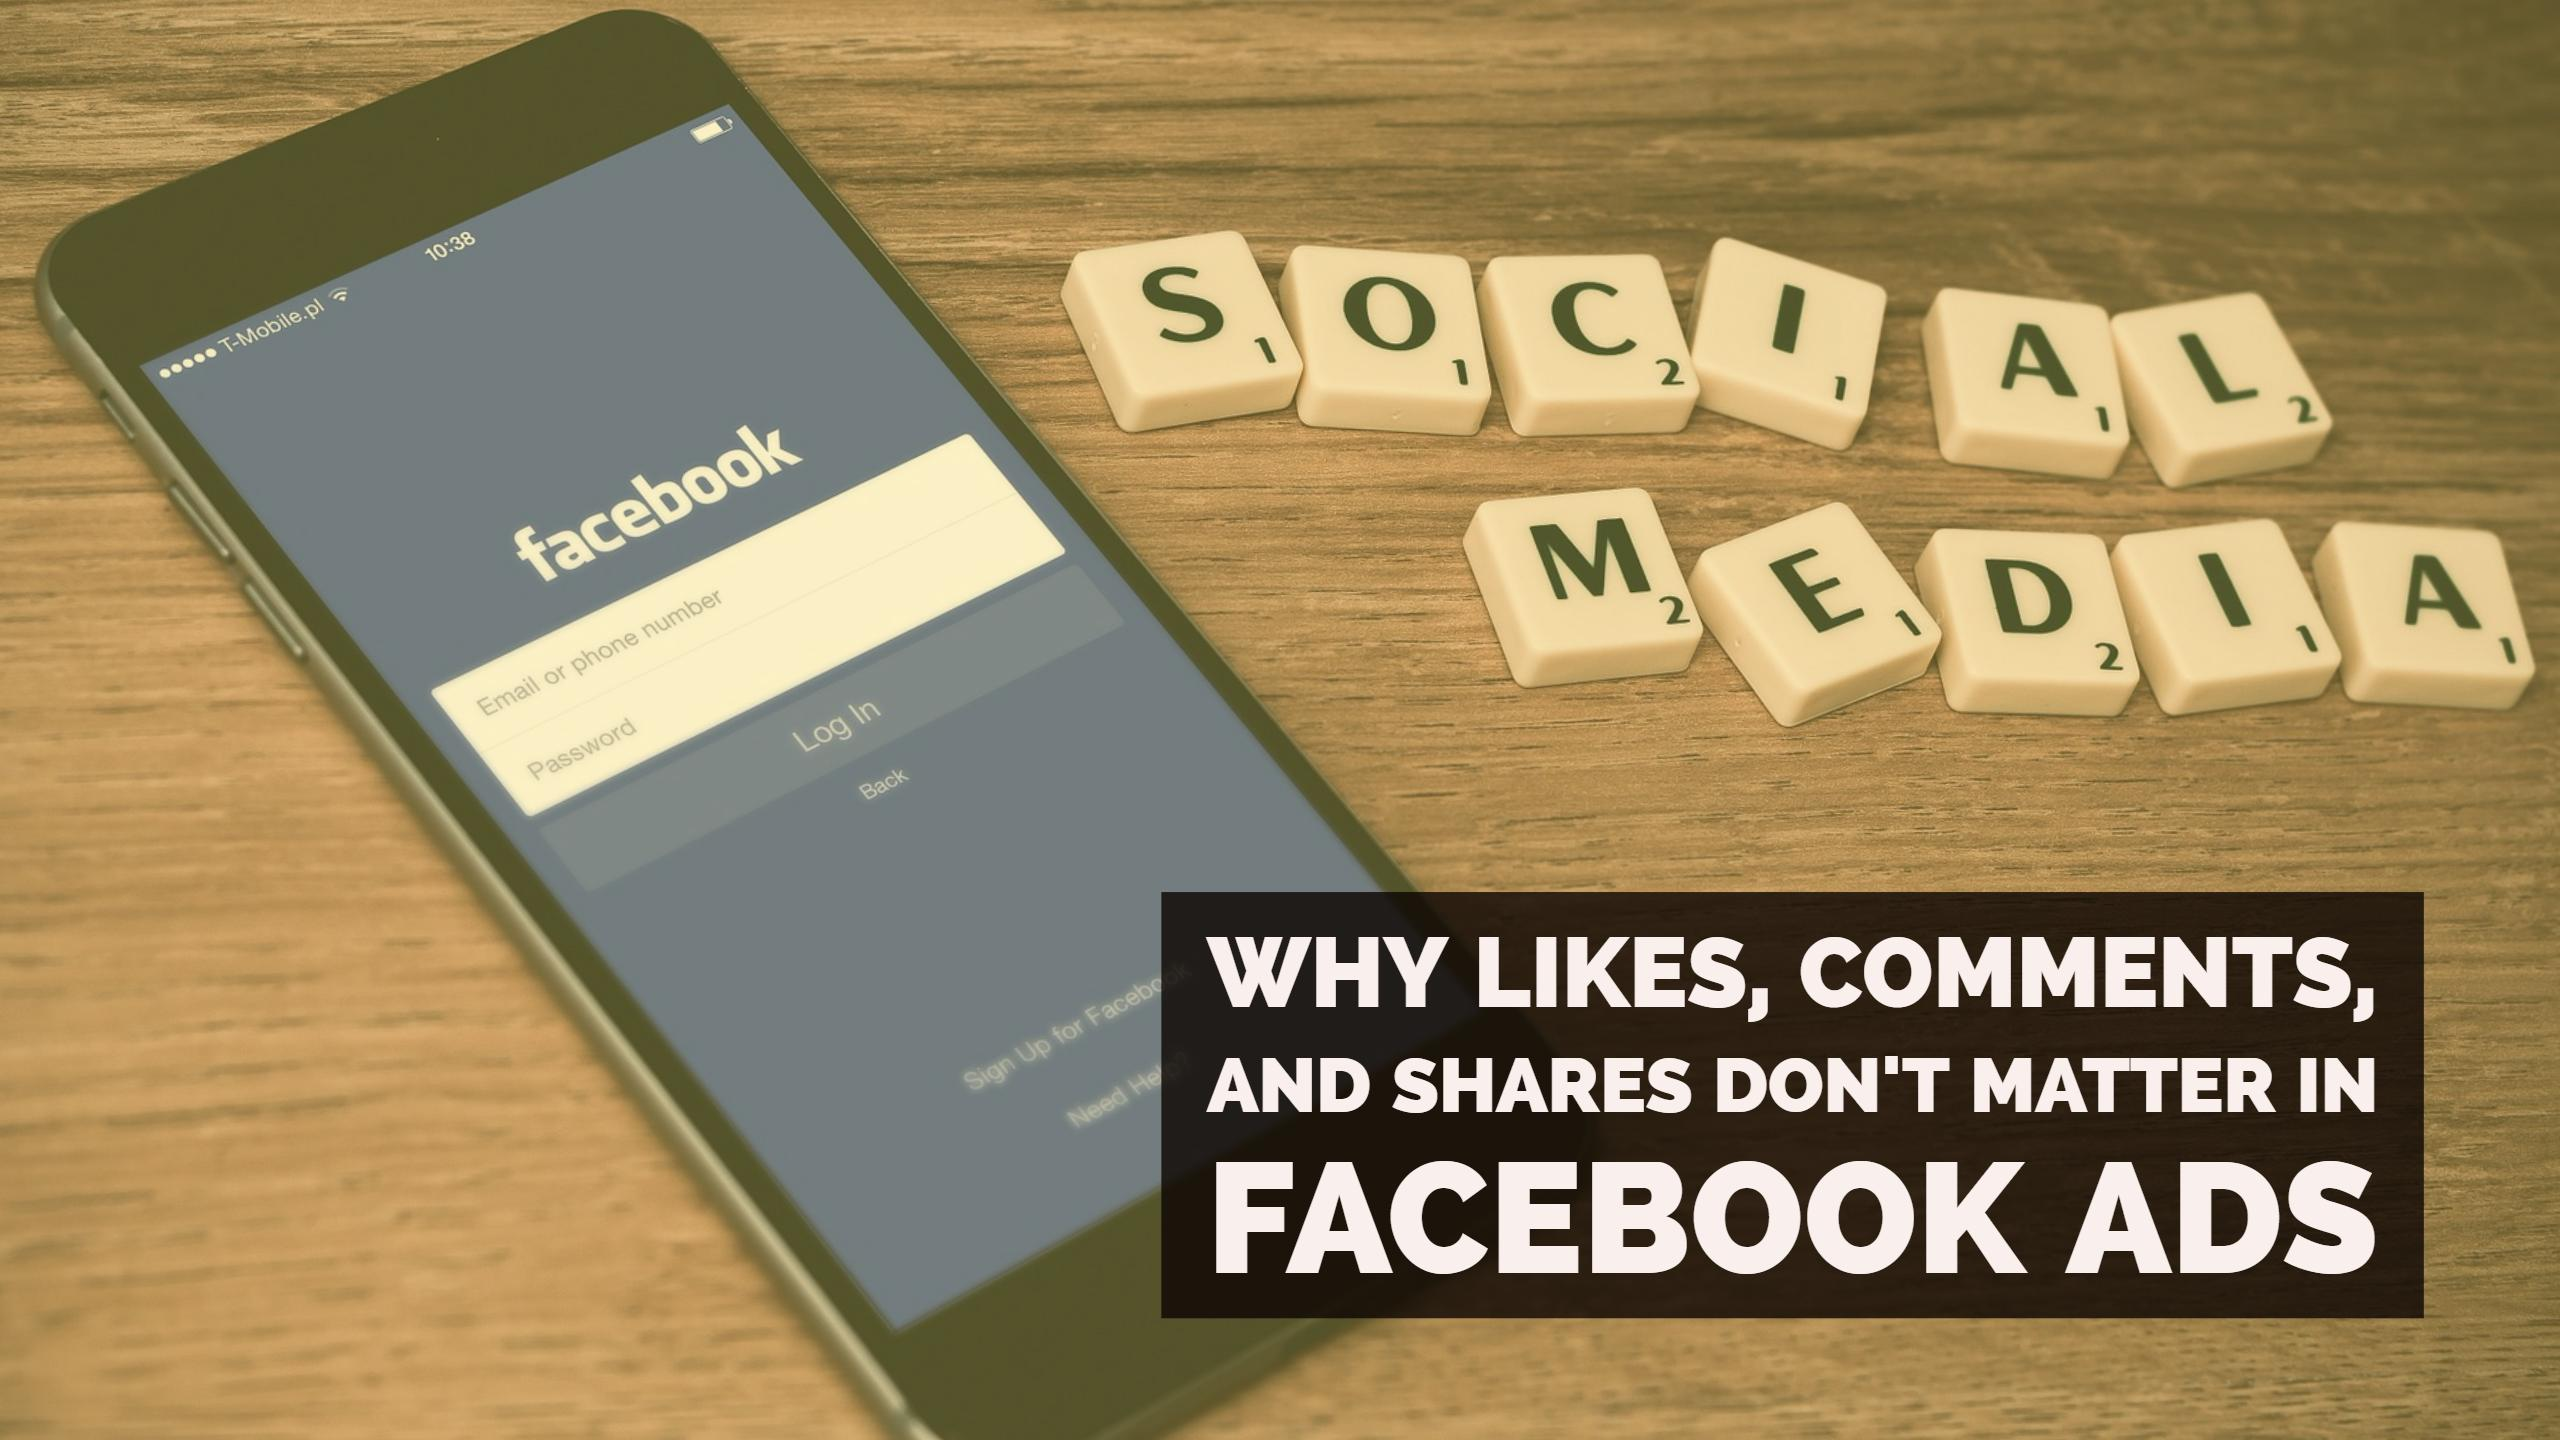 Why Likes, Comments, And Shares Don't Matter In Facebook Ads